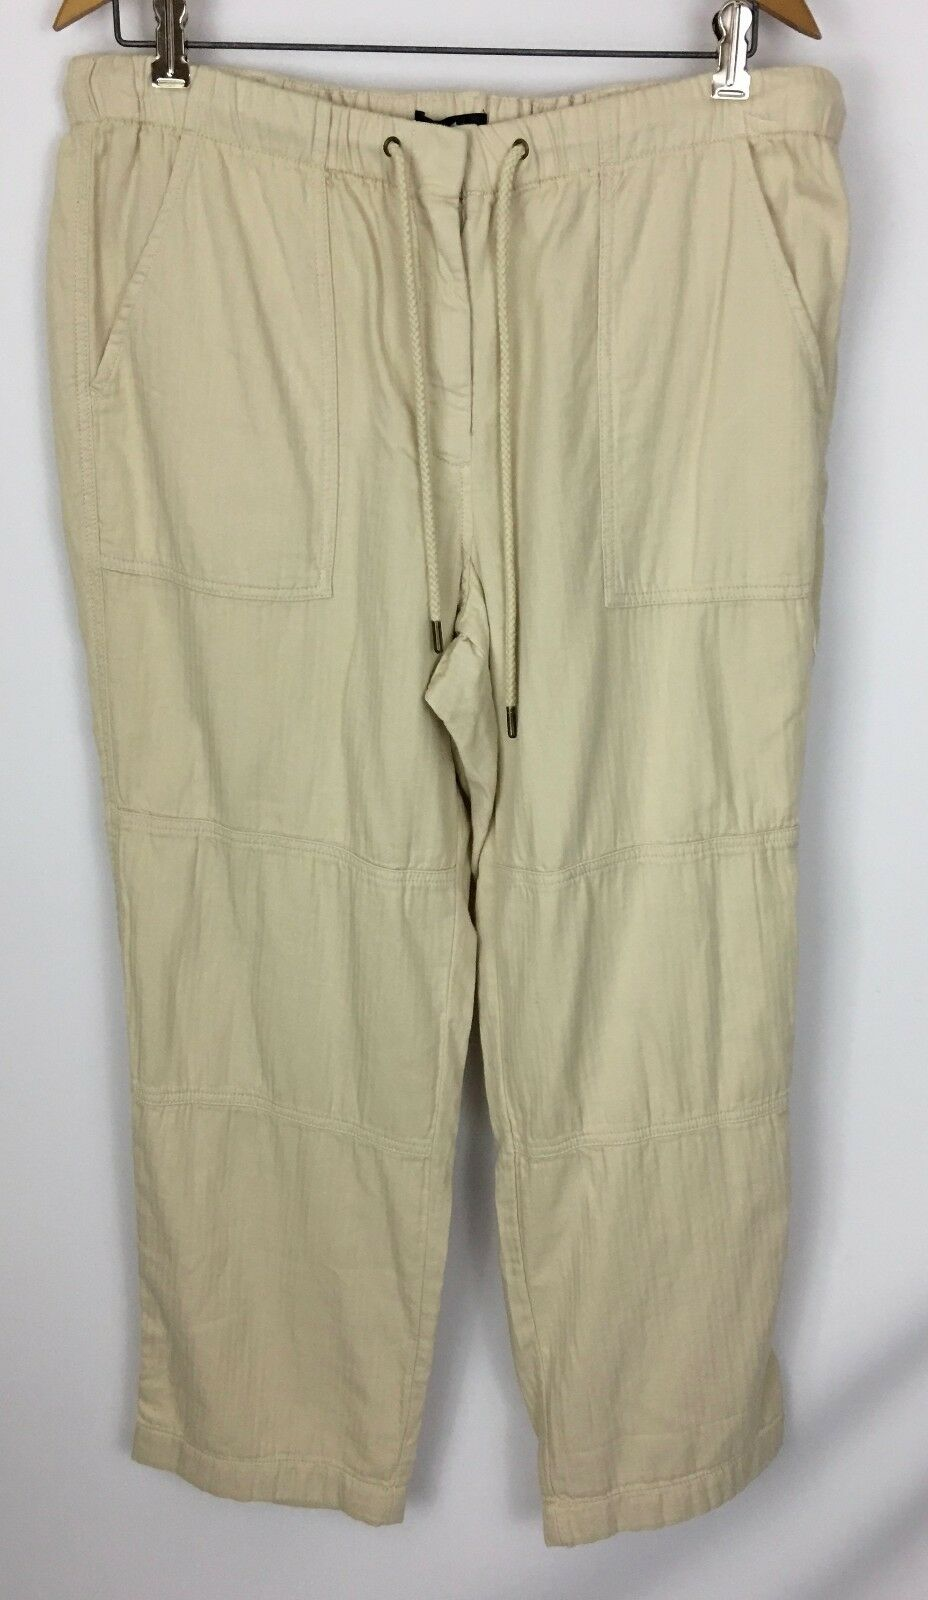 J. Crew Beige Casual Cotton Drawstring Cropped Pants Size 16